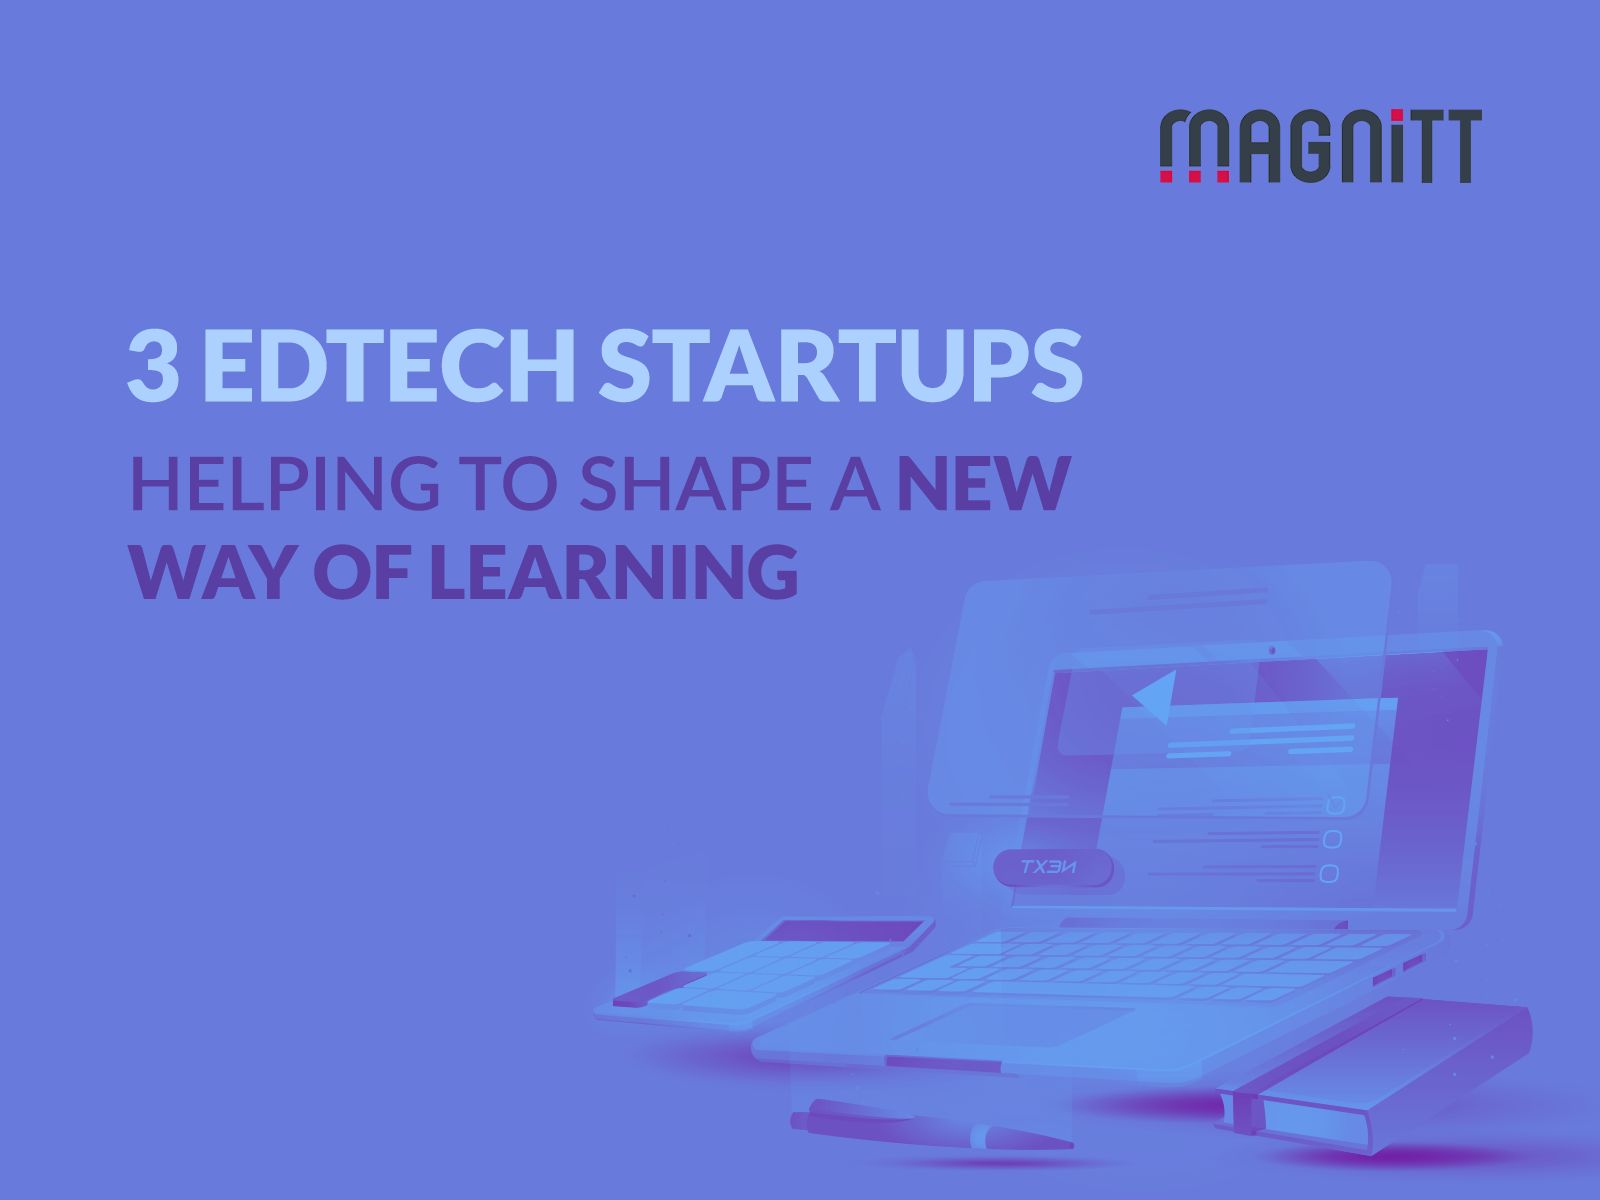 Meet 3 Edtech startups helping to shape a new way of learning